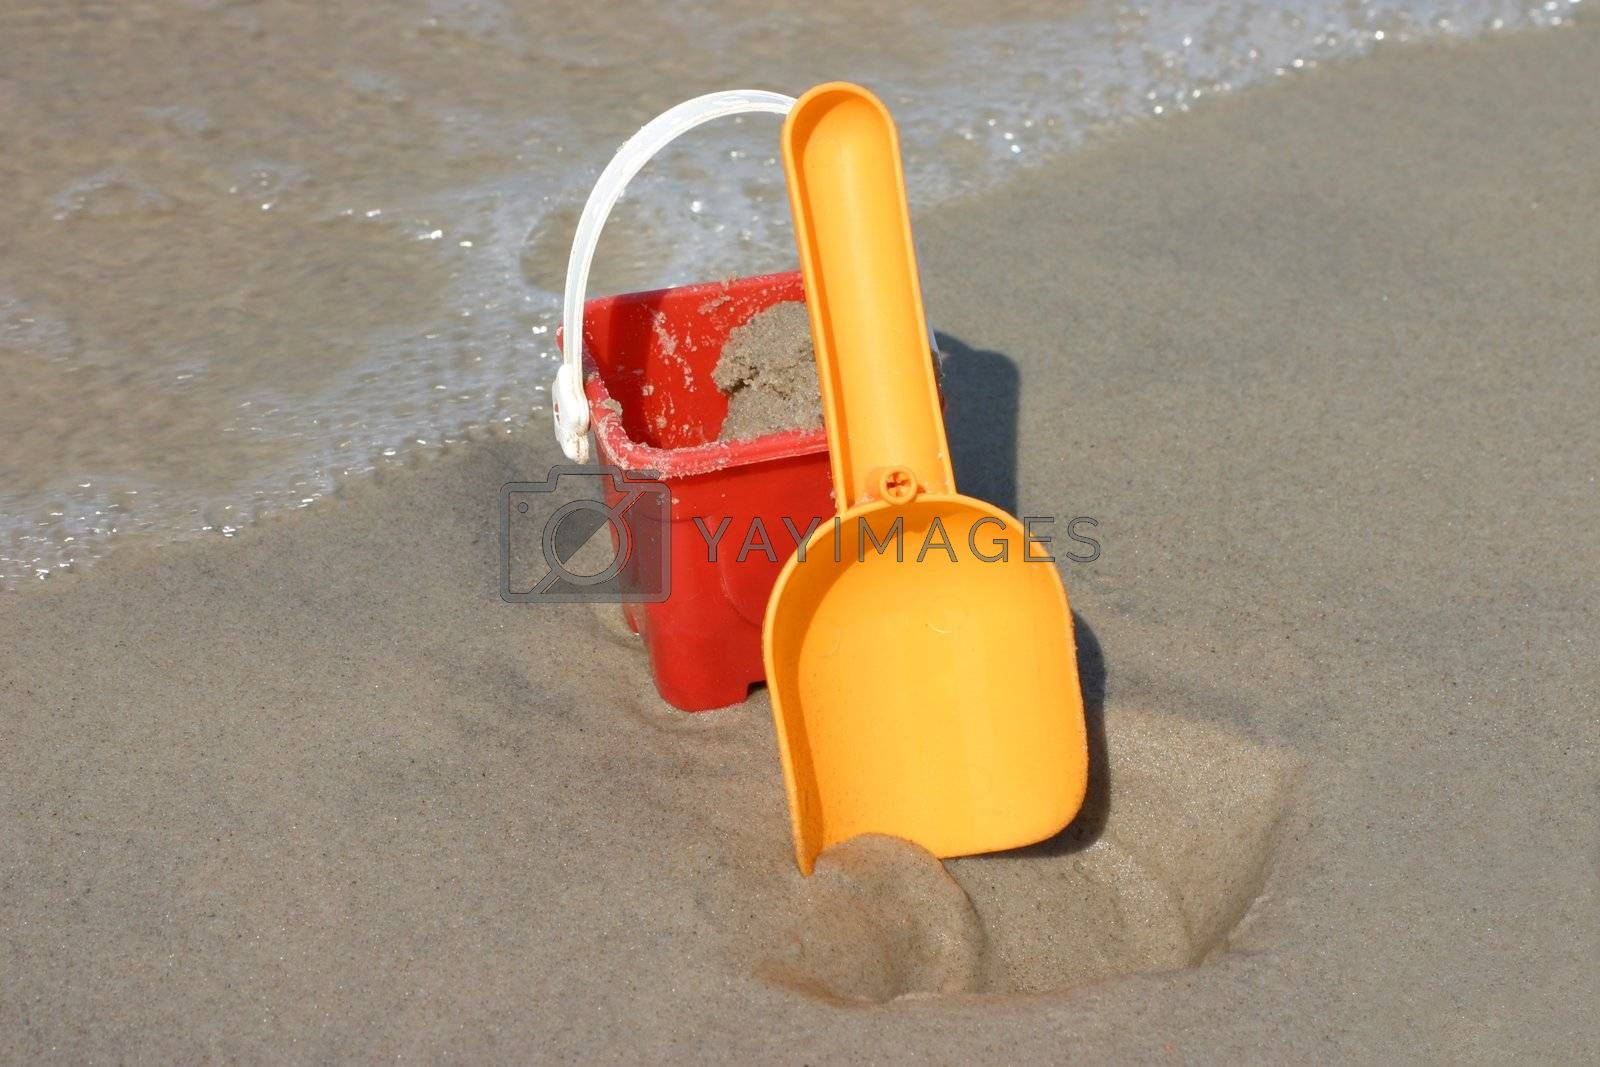 Toy bucket and shovel on the beach, plenty of copy space